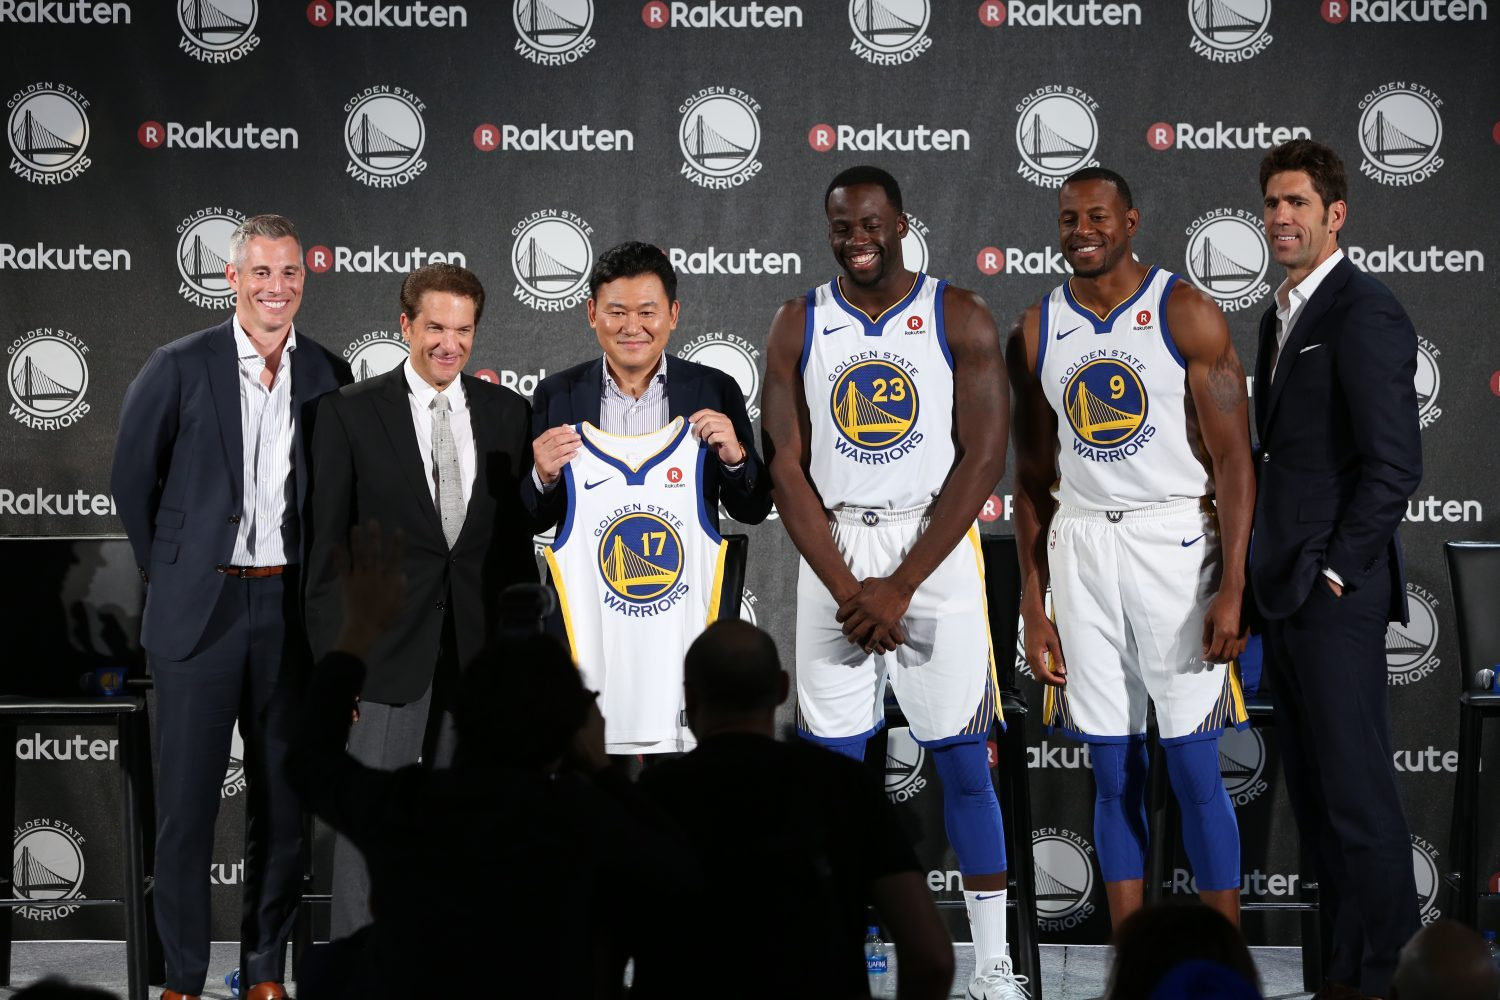 Golden State Warriors celebrate Chinese community with new uniforms 4b555f095